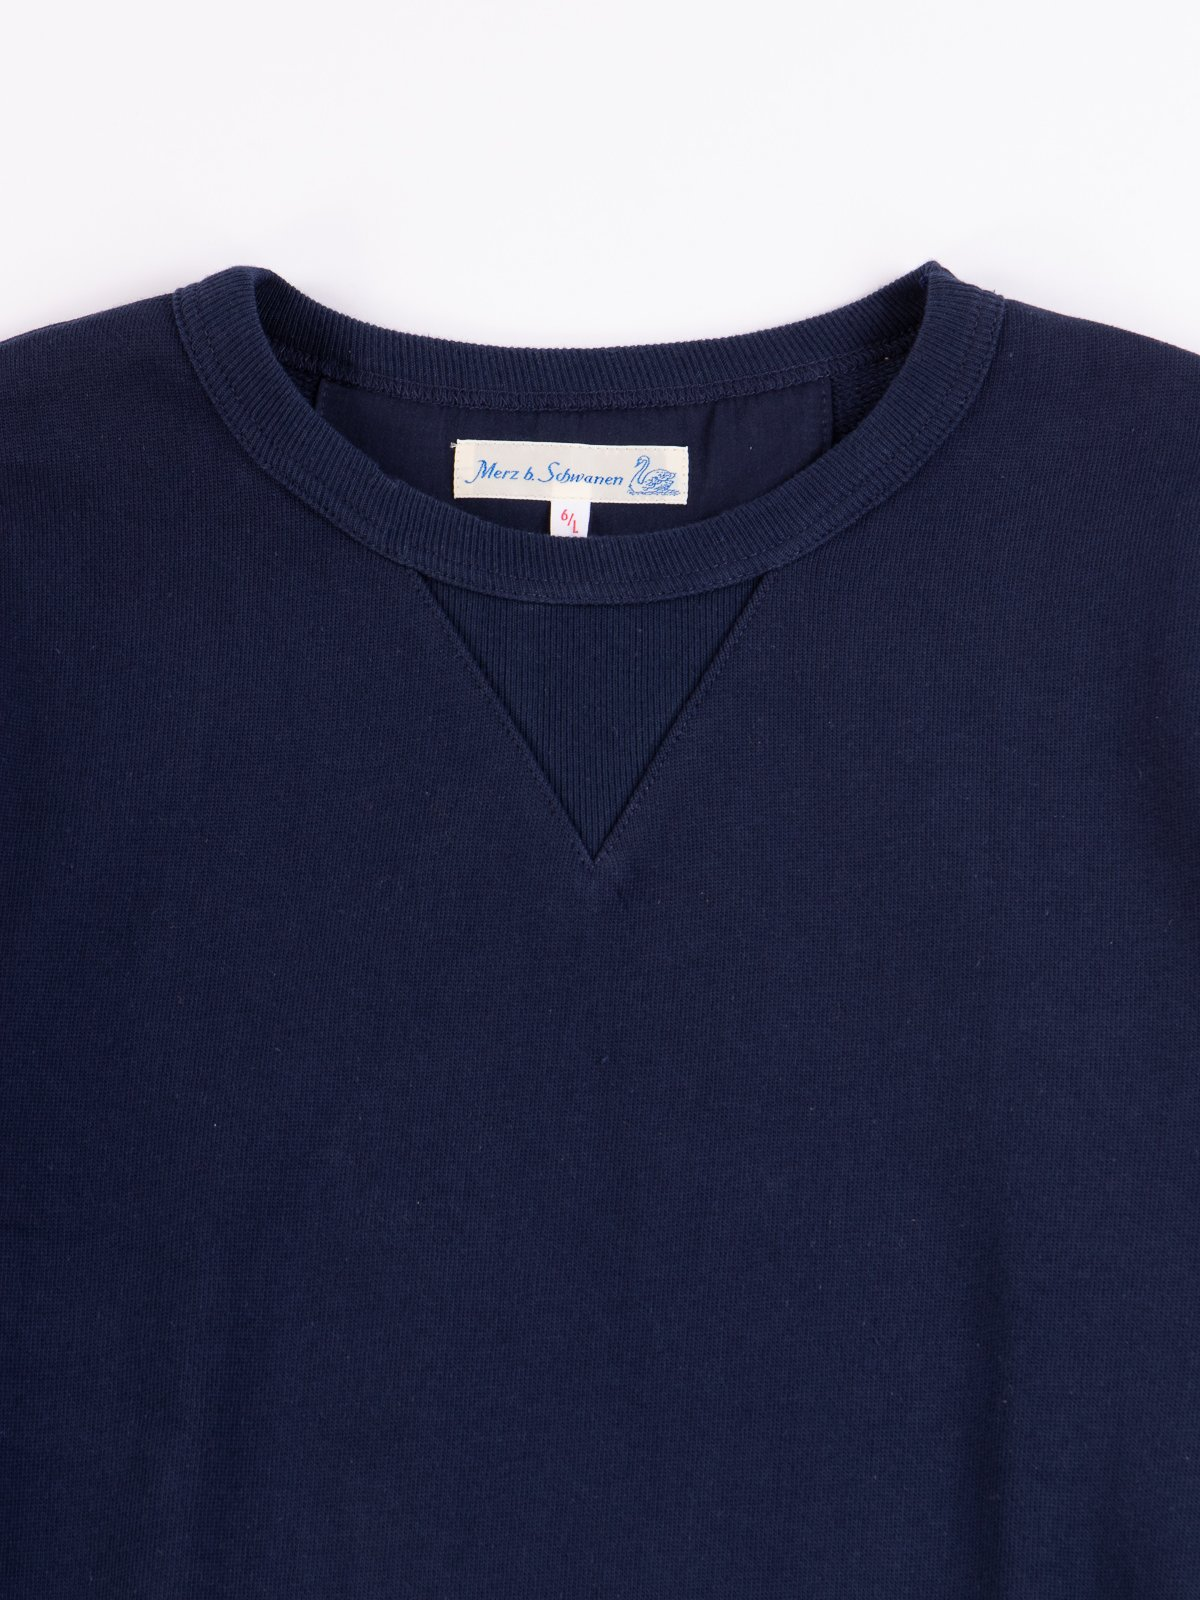 Ink Blue 3S48 Organic Cotton Heavy Sweater - Image 3